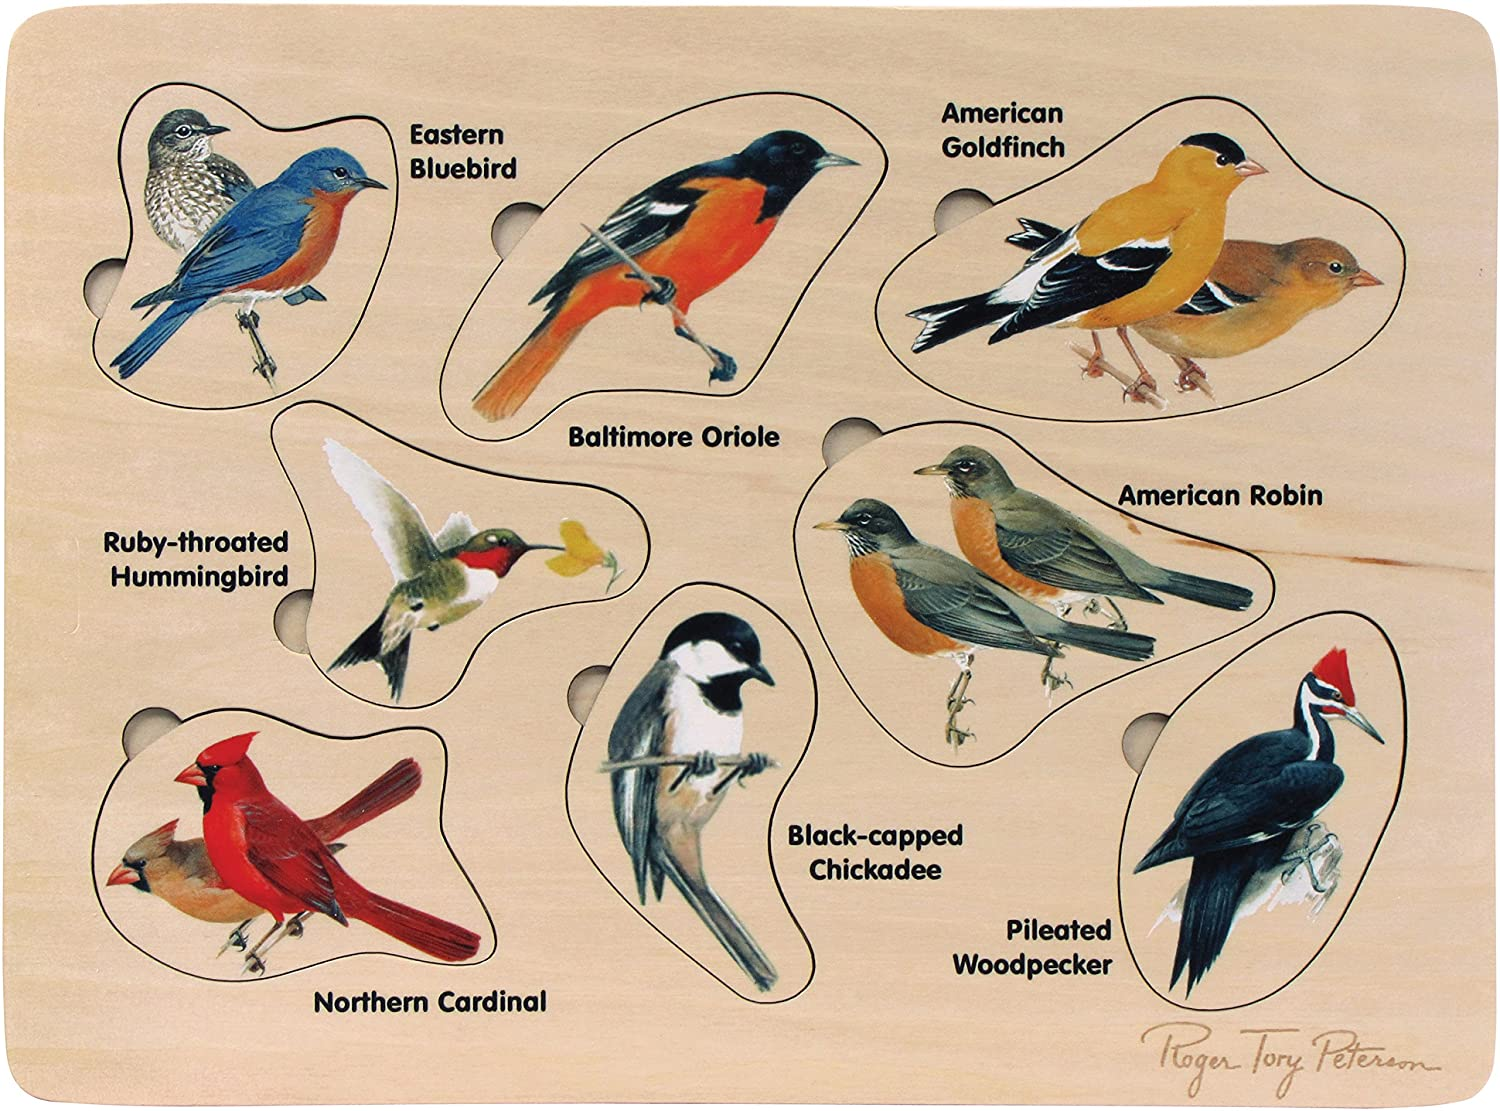 amazon com lift and learn peterson s backyard birds puzzle made rh amazon com peterson's backyard birds of the northeast poster peterson's backyard birds of the midwest